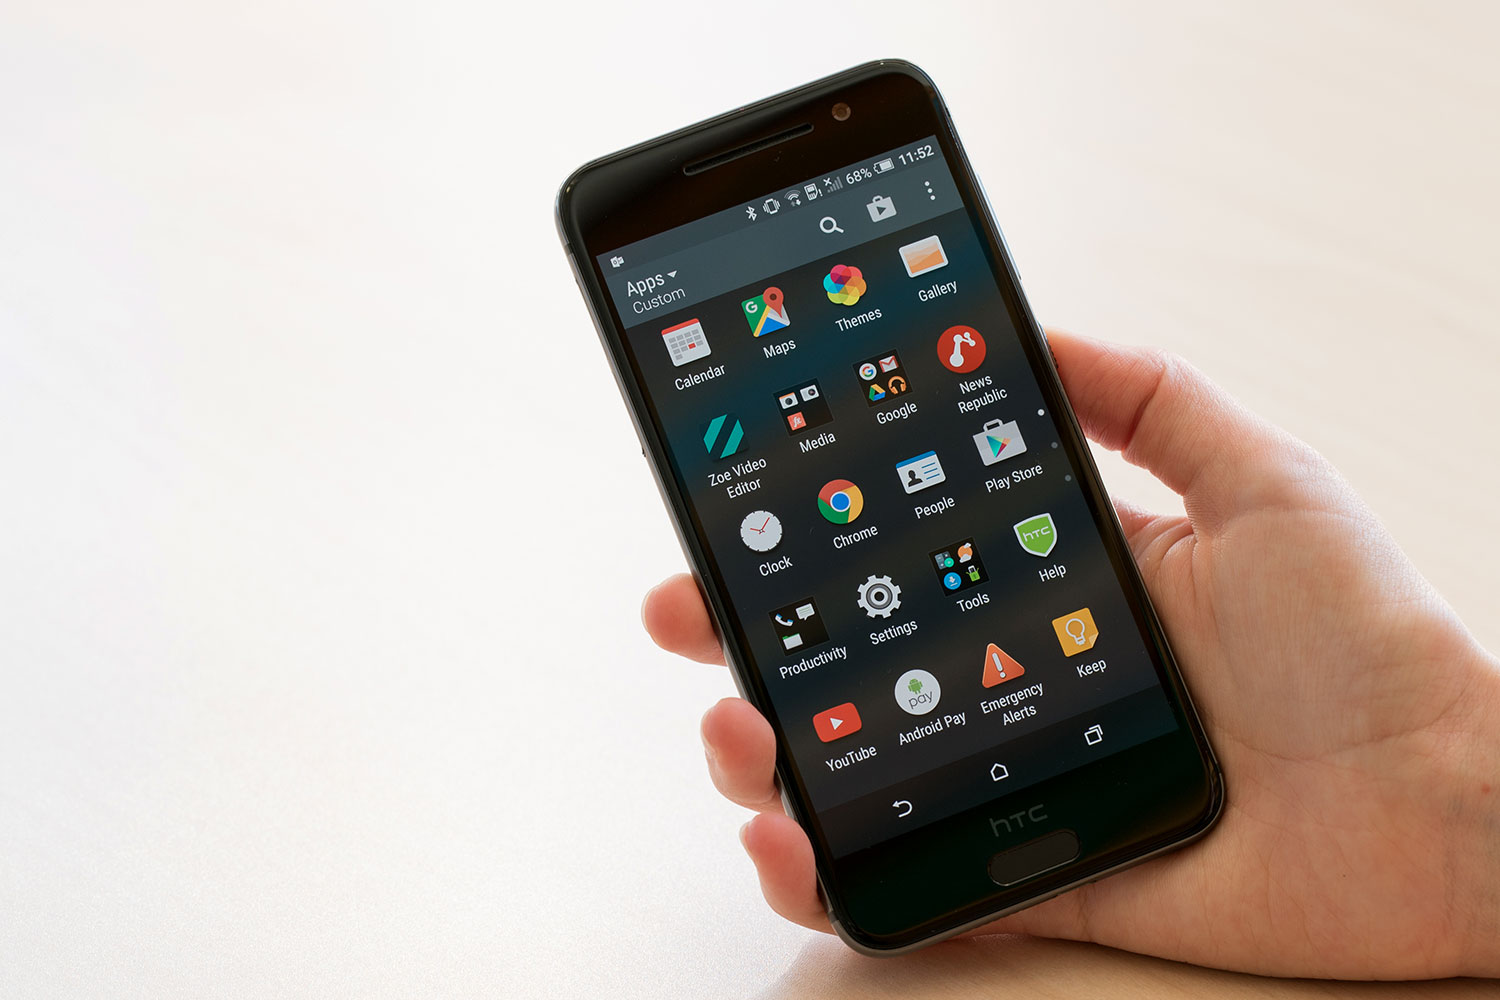 Phone Is Htc One An Android Phone how to disable in app purchases on an android device digital trends htc one a grid